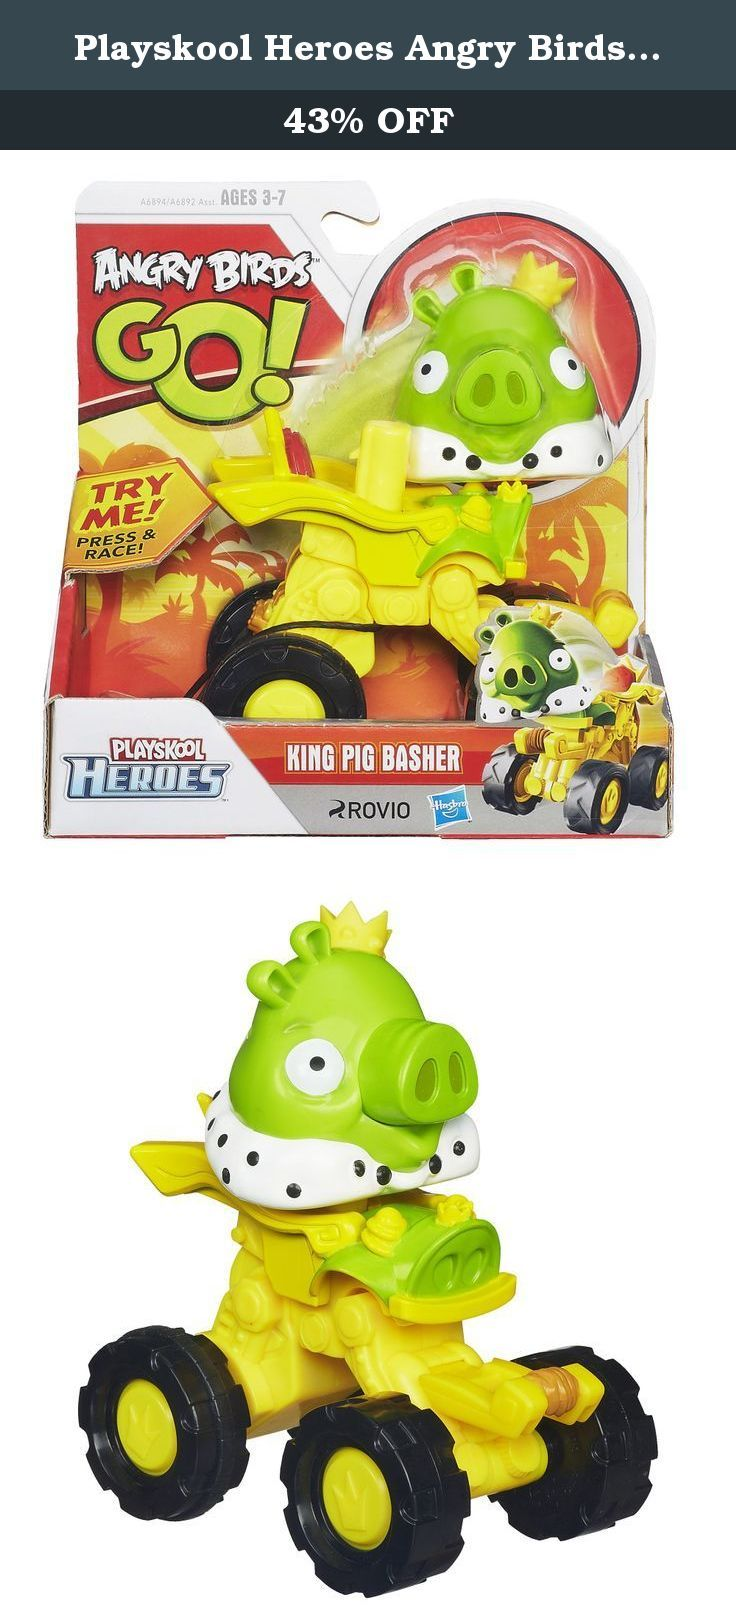 Playskool Heroes Angry Birds Go! King Pig Basher. It's the Angry Birds app come to life, in collectible birds and pigs your little ones can roll and race! The King Pig Basher lets you continue the clash between the birds and the pigs on the track! Zoom your King Pig Basher until he crashes and watch the pig part pop out and slam into his birdy opponent. Who will win the ultimate bird-pig smash-up? It's all up to you! Playskool and all related characters are trademarks of Hasbro. Hasbro…